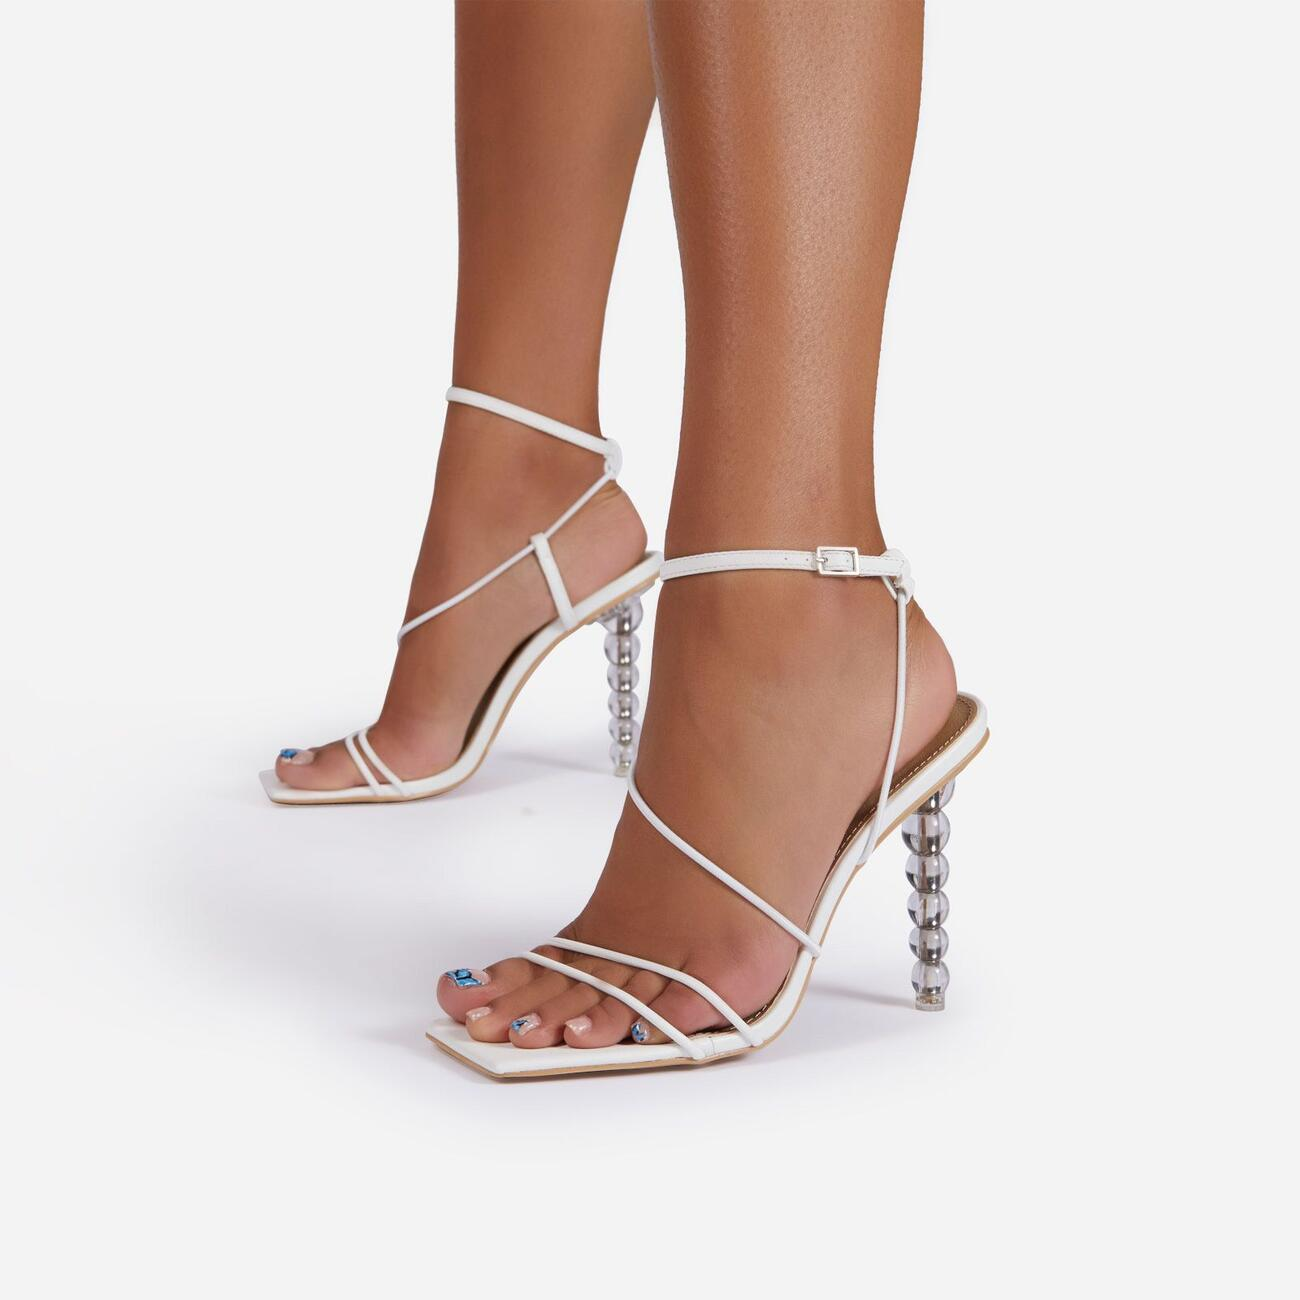 Drama-Queen Barely There Square Toe Clear Perspex Sculptured Heel In White Faux Leather Image 1